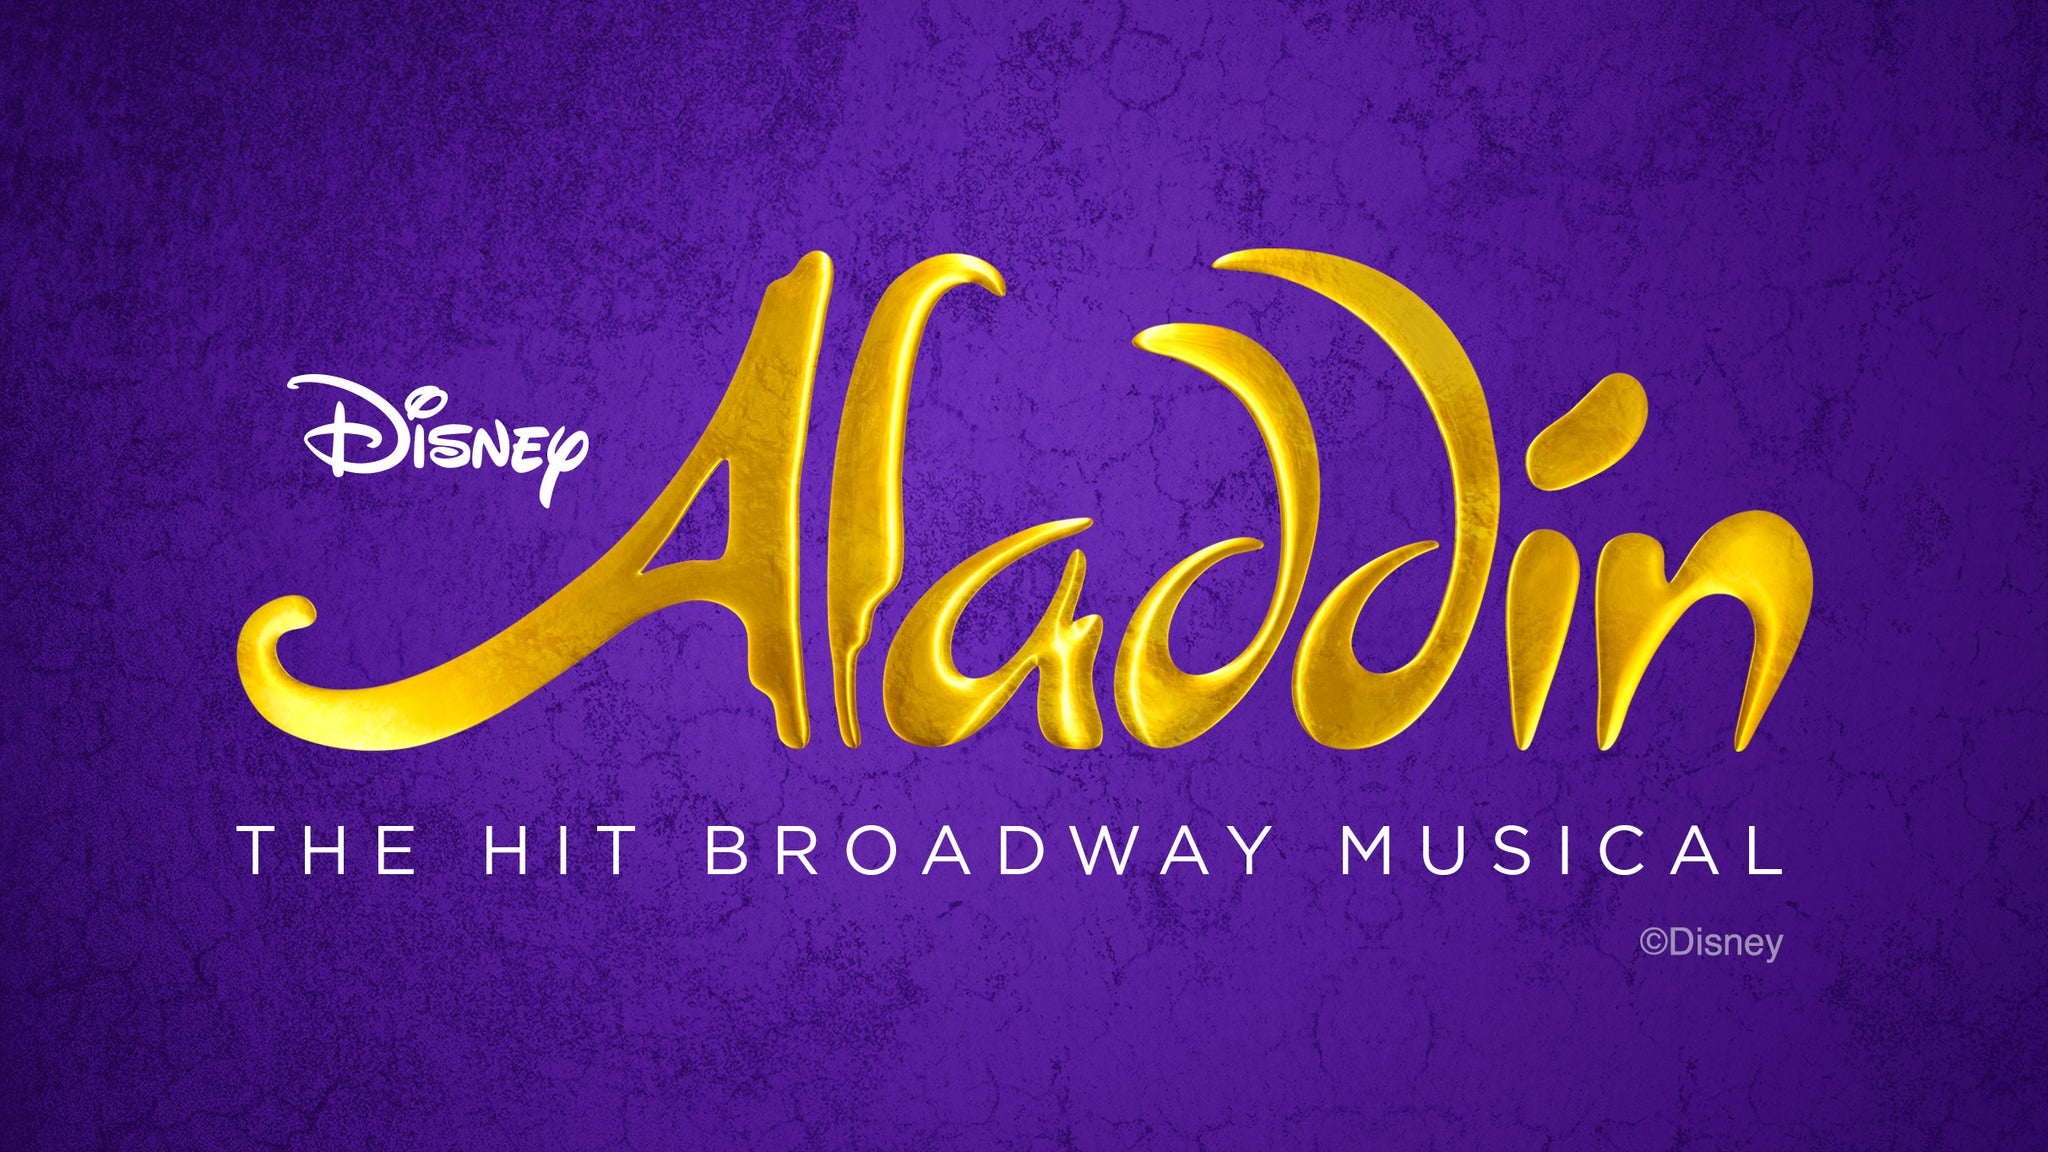 SORRY, THIS EVENT IS NO LONGER ACTIVE<br>Aladdin (Touring) at Hollywood Pantages Theatre - Los Angeles, CA 90028